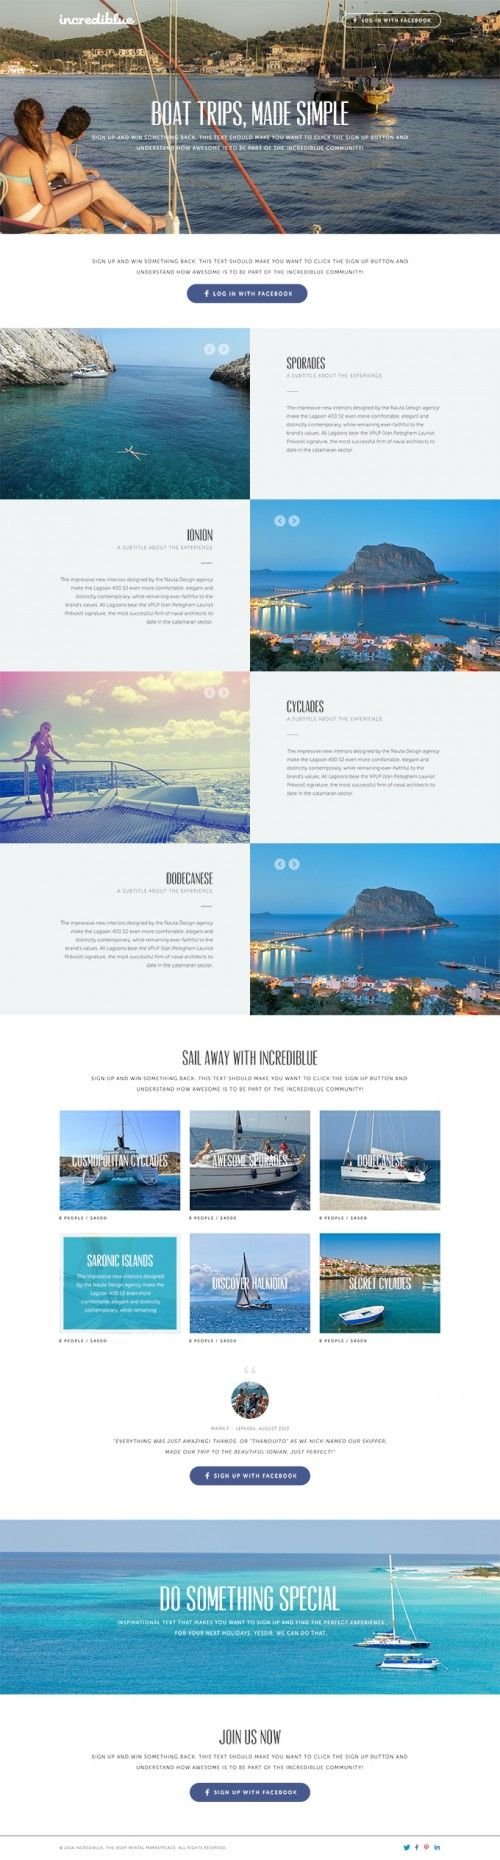 Download Free Travel Website Landing Page PSD Template at Downloadpsd.com